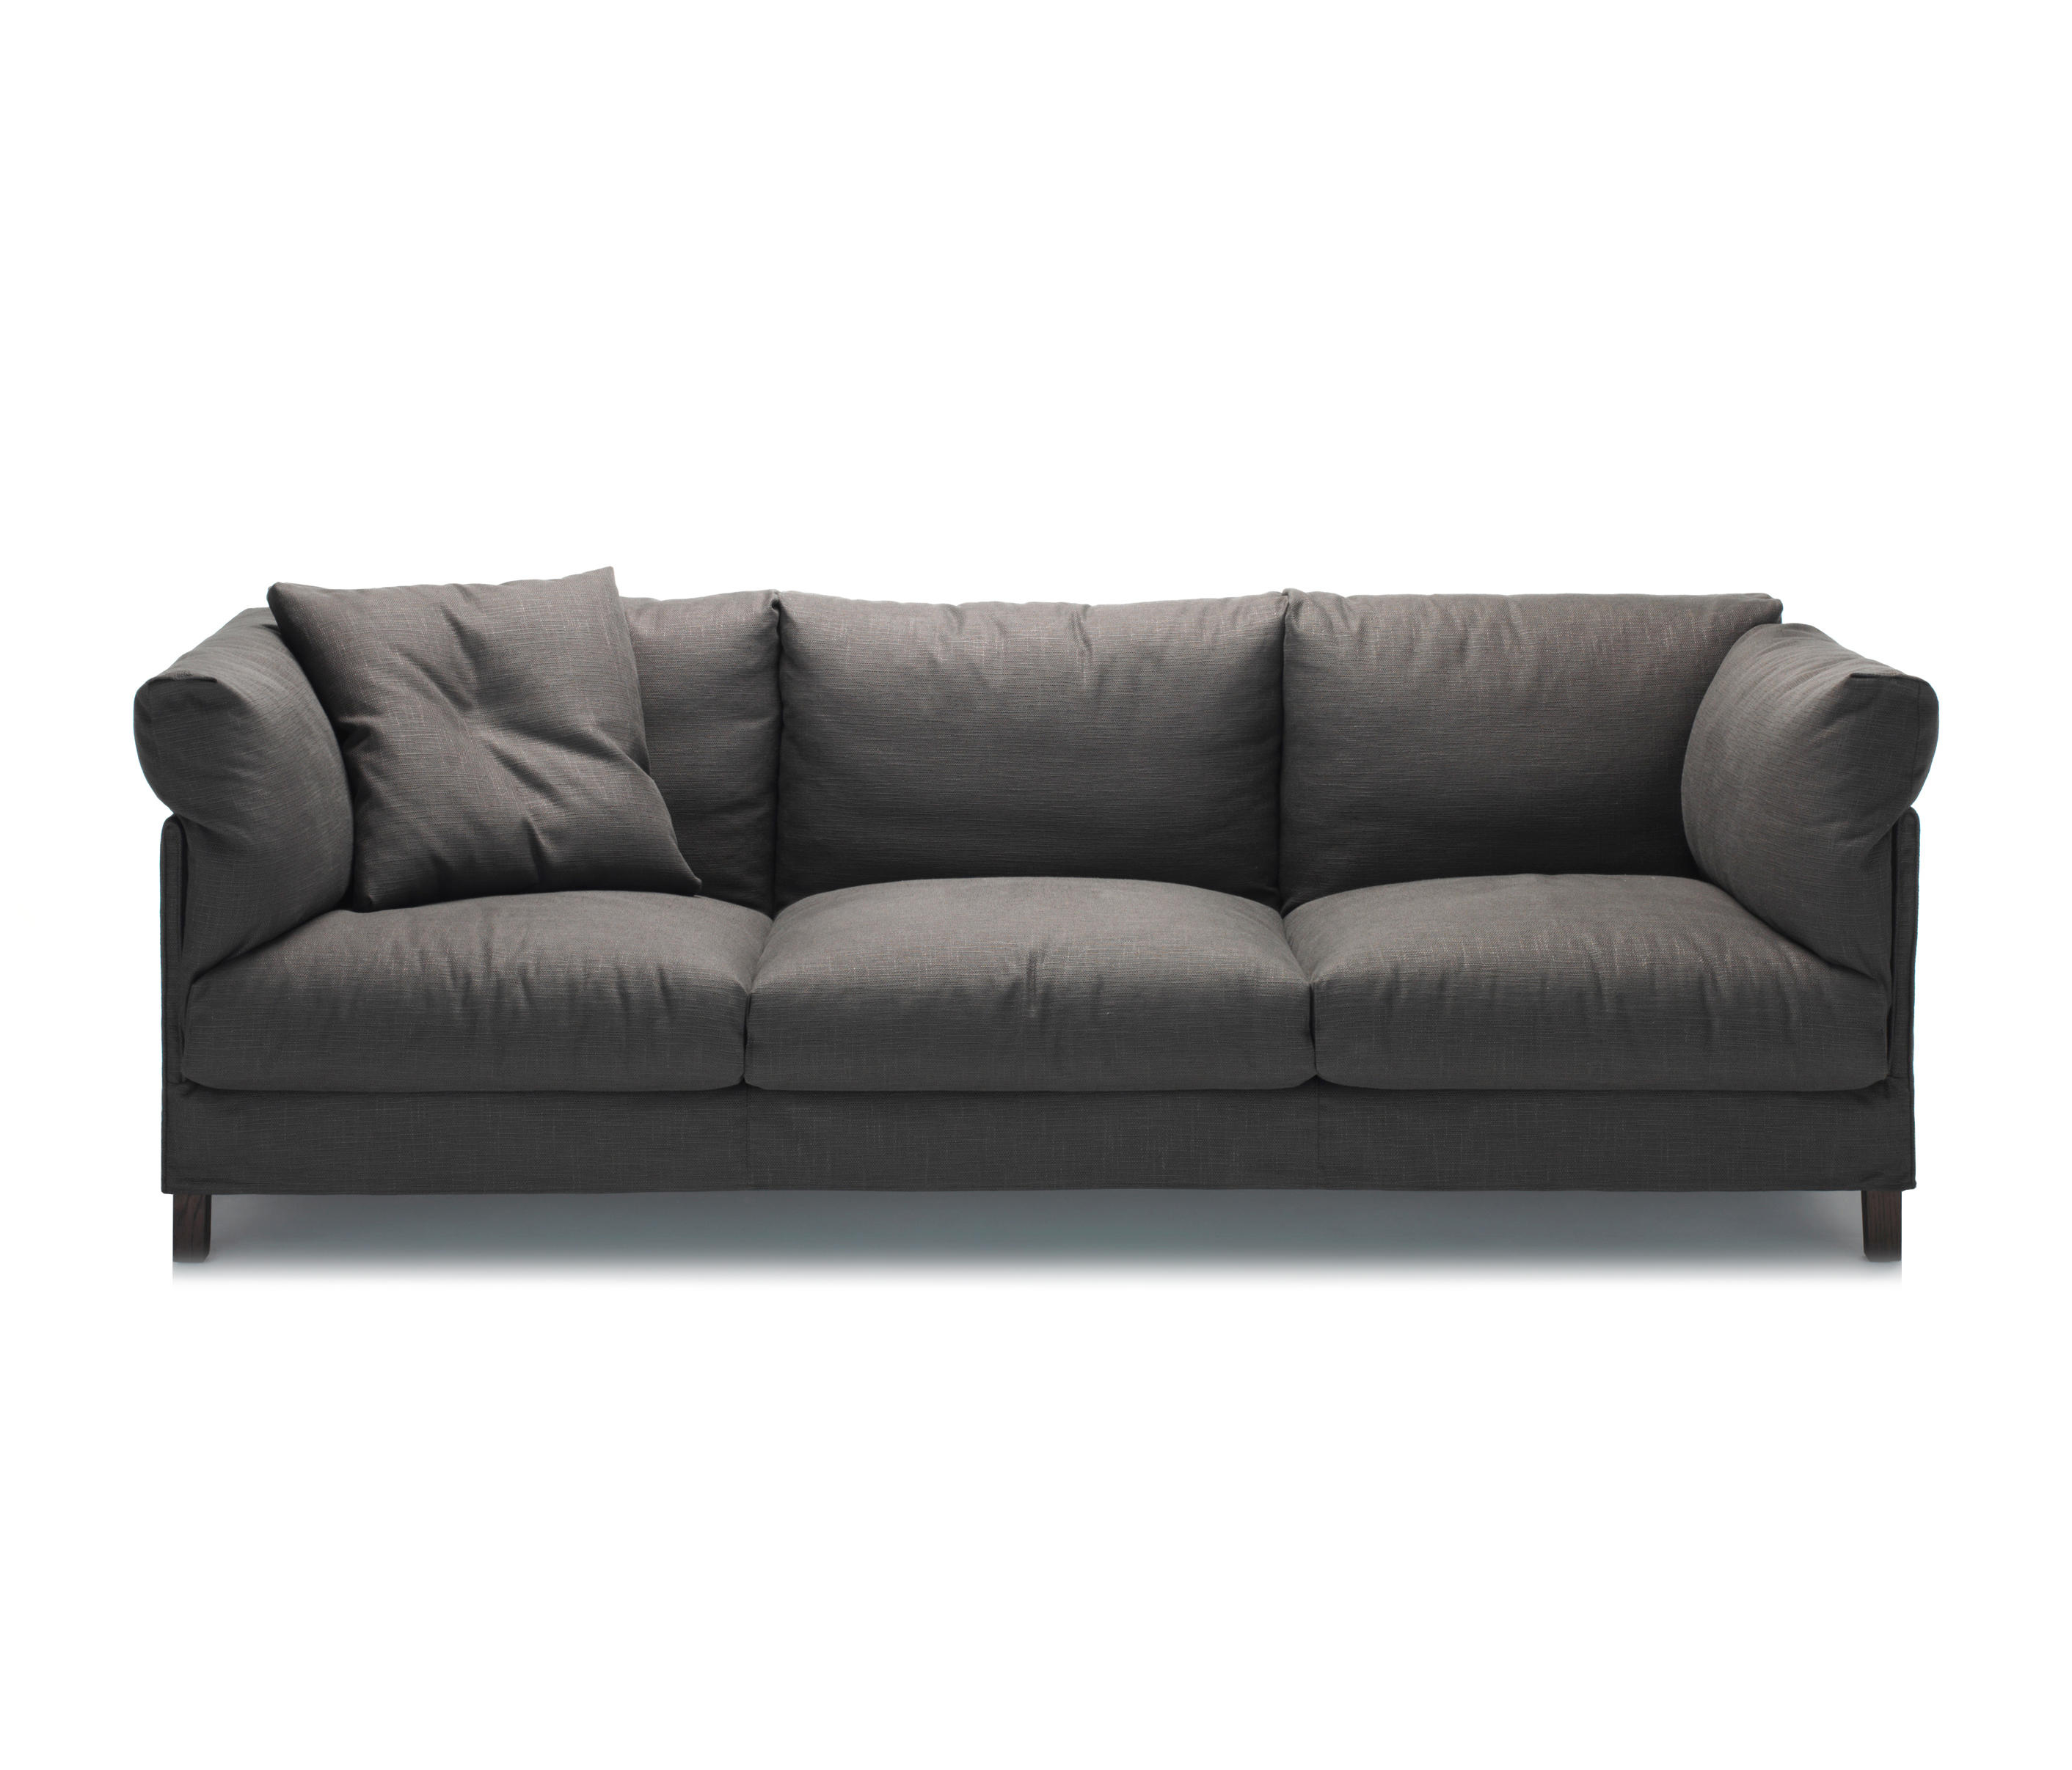 Divano sofas U3dh Chemise sofas From Living Divani Architonic